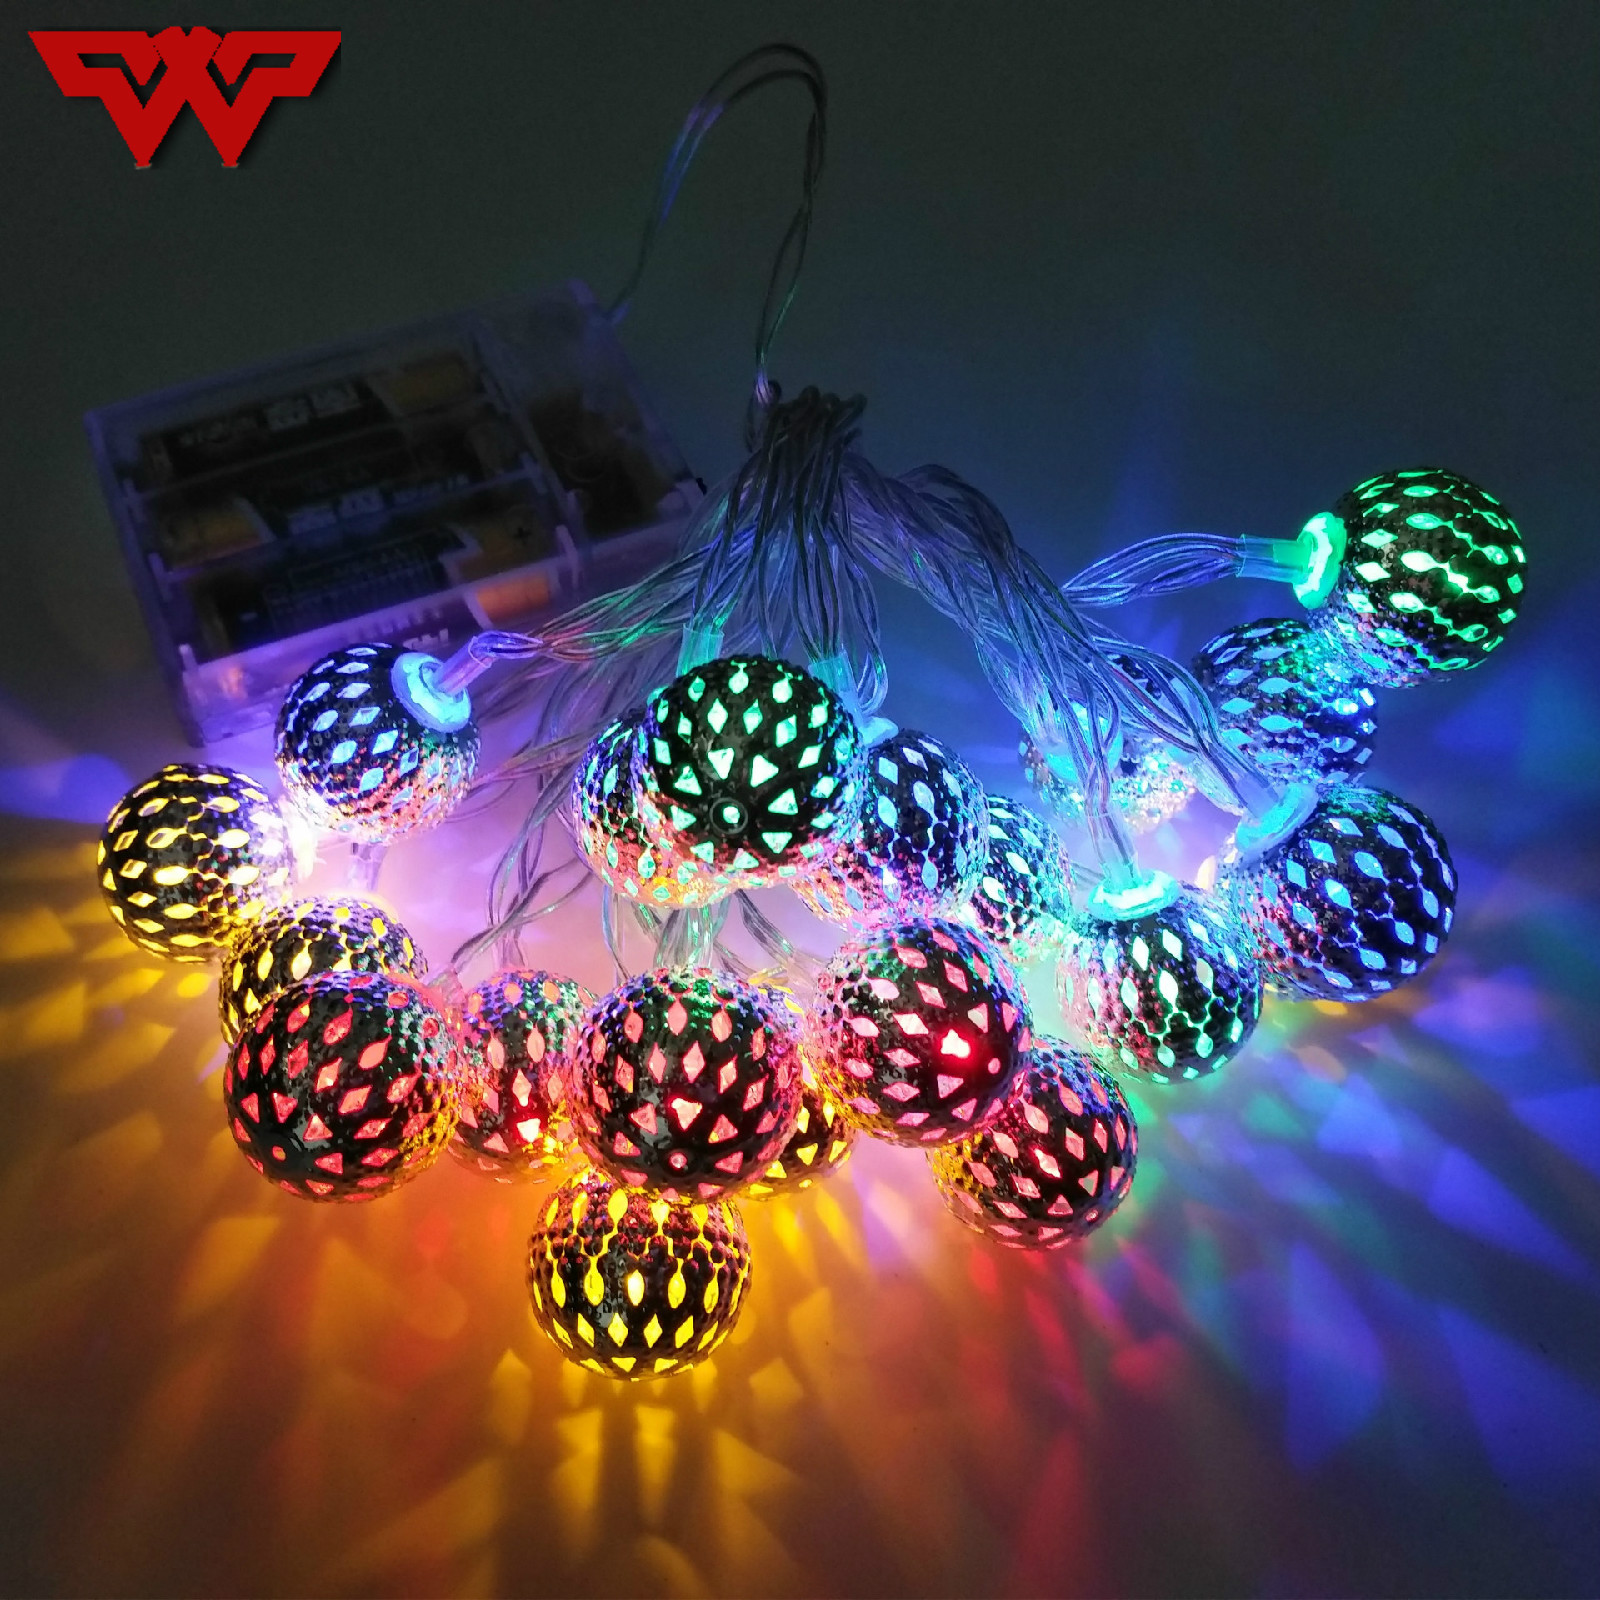 3M/20leds Moroccan Ball LED String Light Warm White Fairy Lights Garlands LED Holiday Party Wedding Decoration Battery/USB